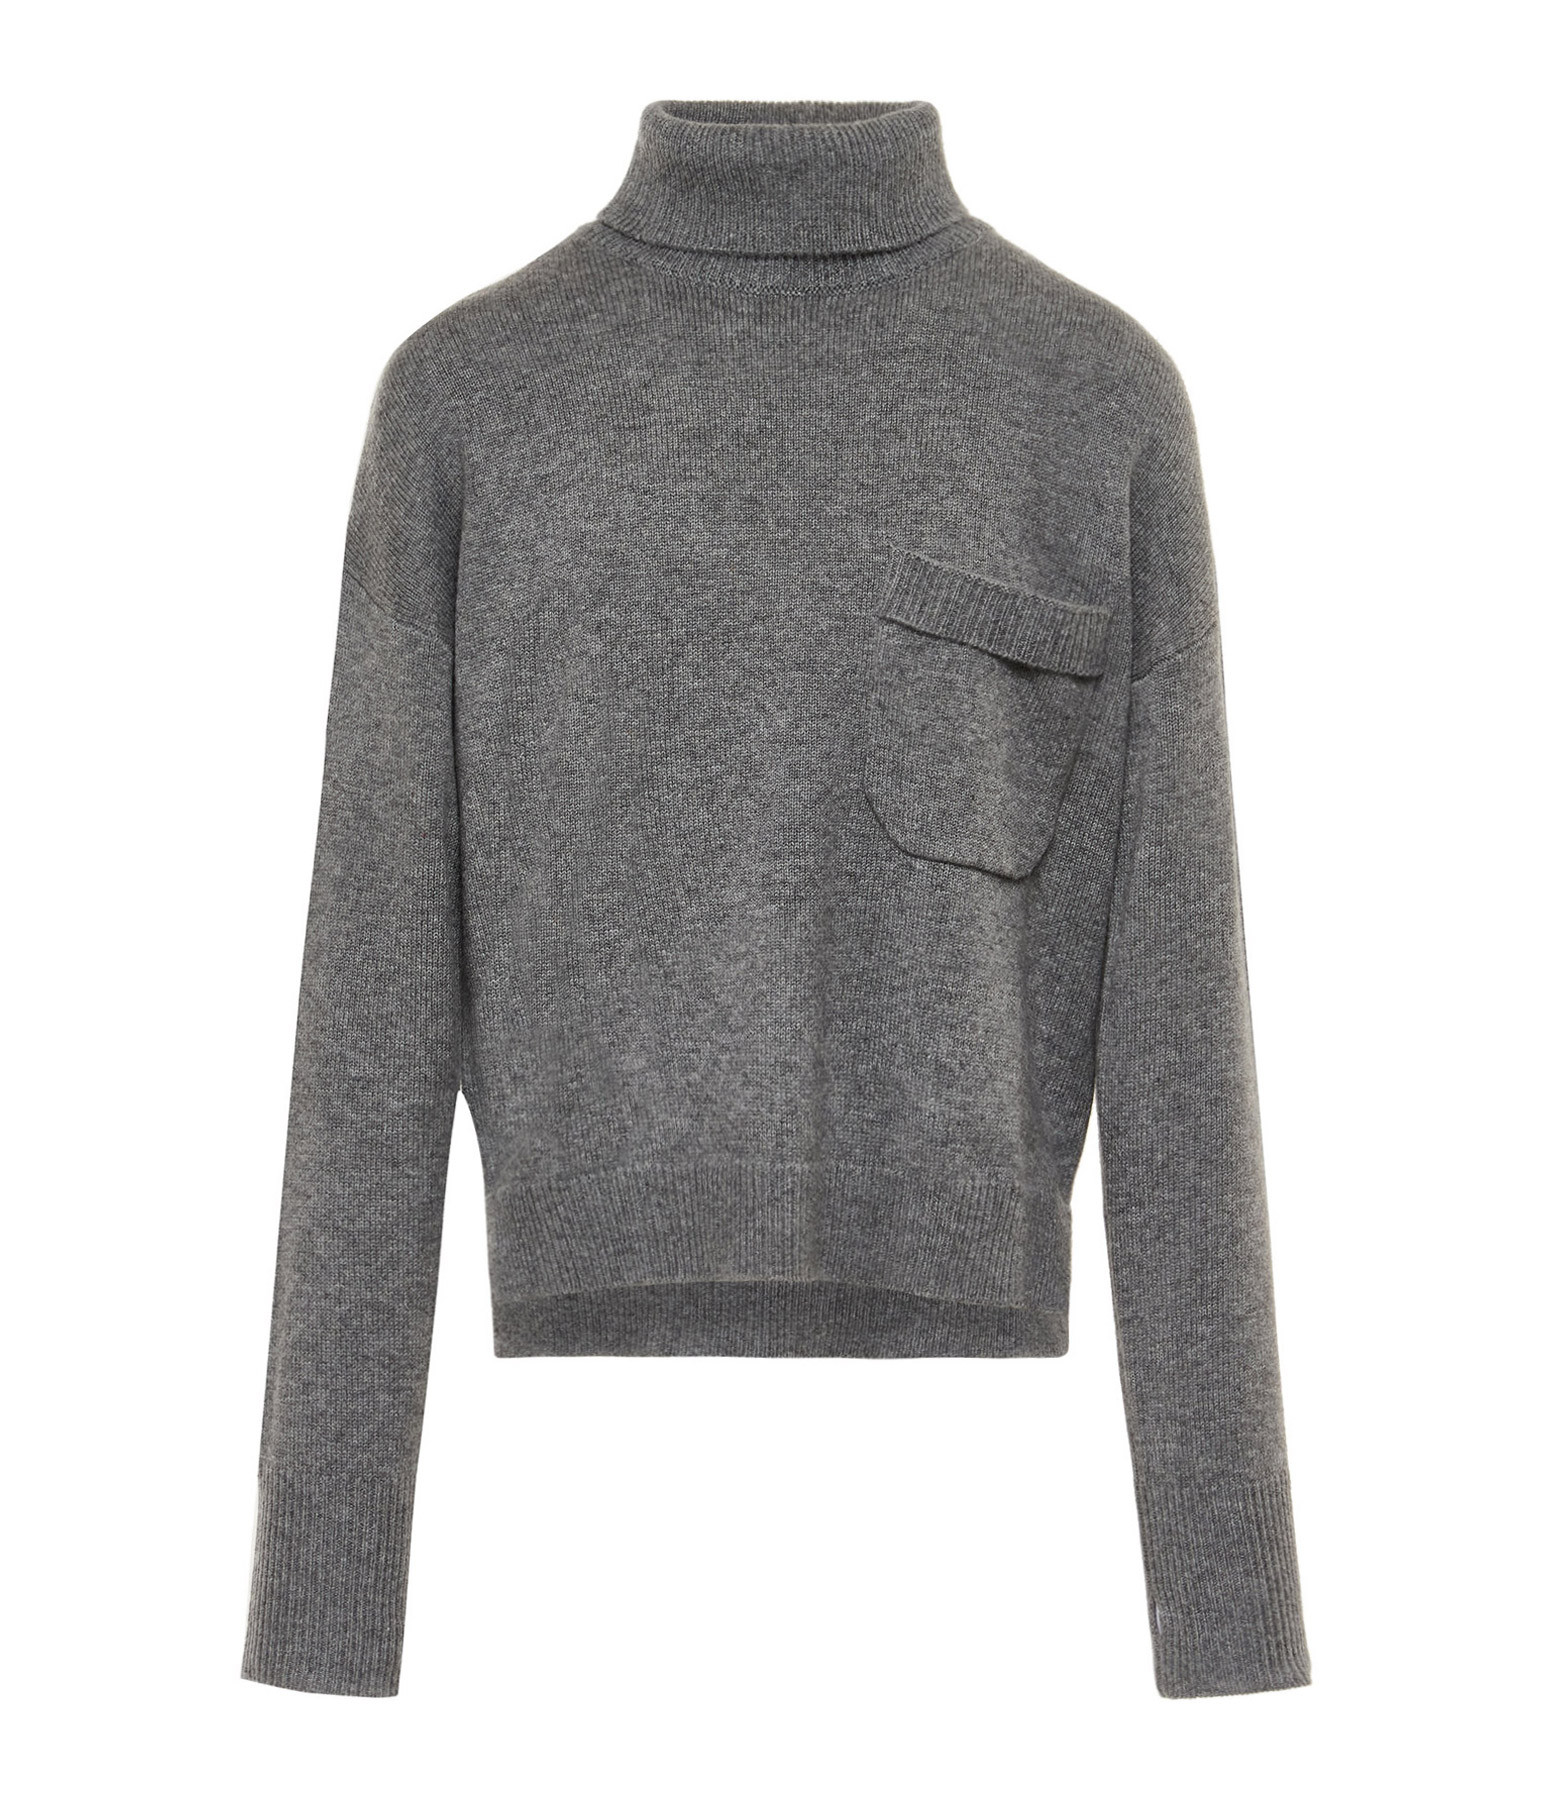 SEASONS - Pull Cachemire Gris Clair